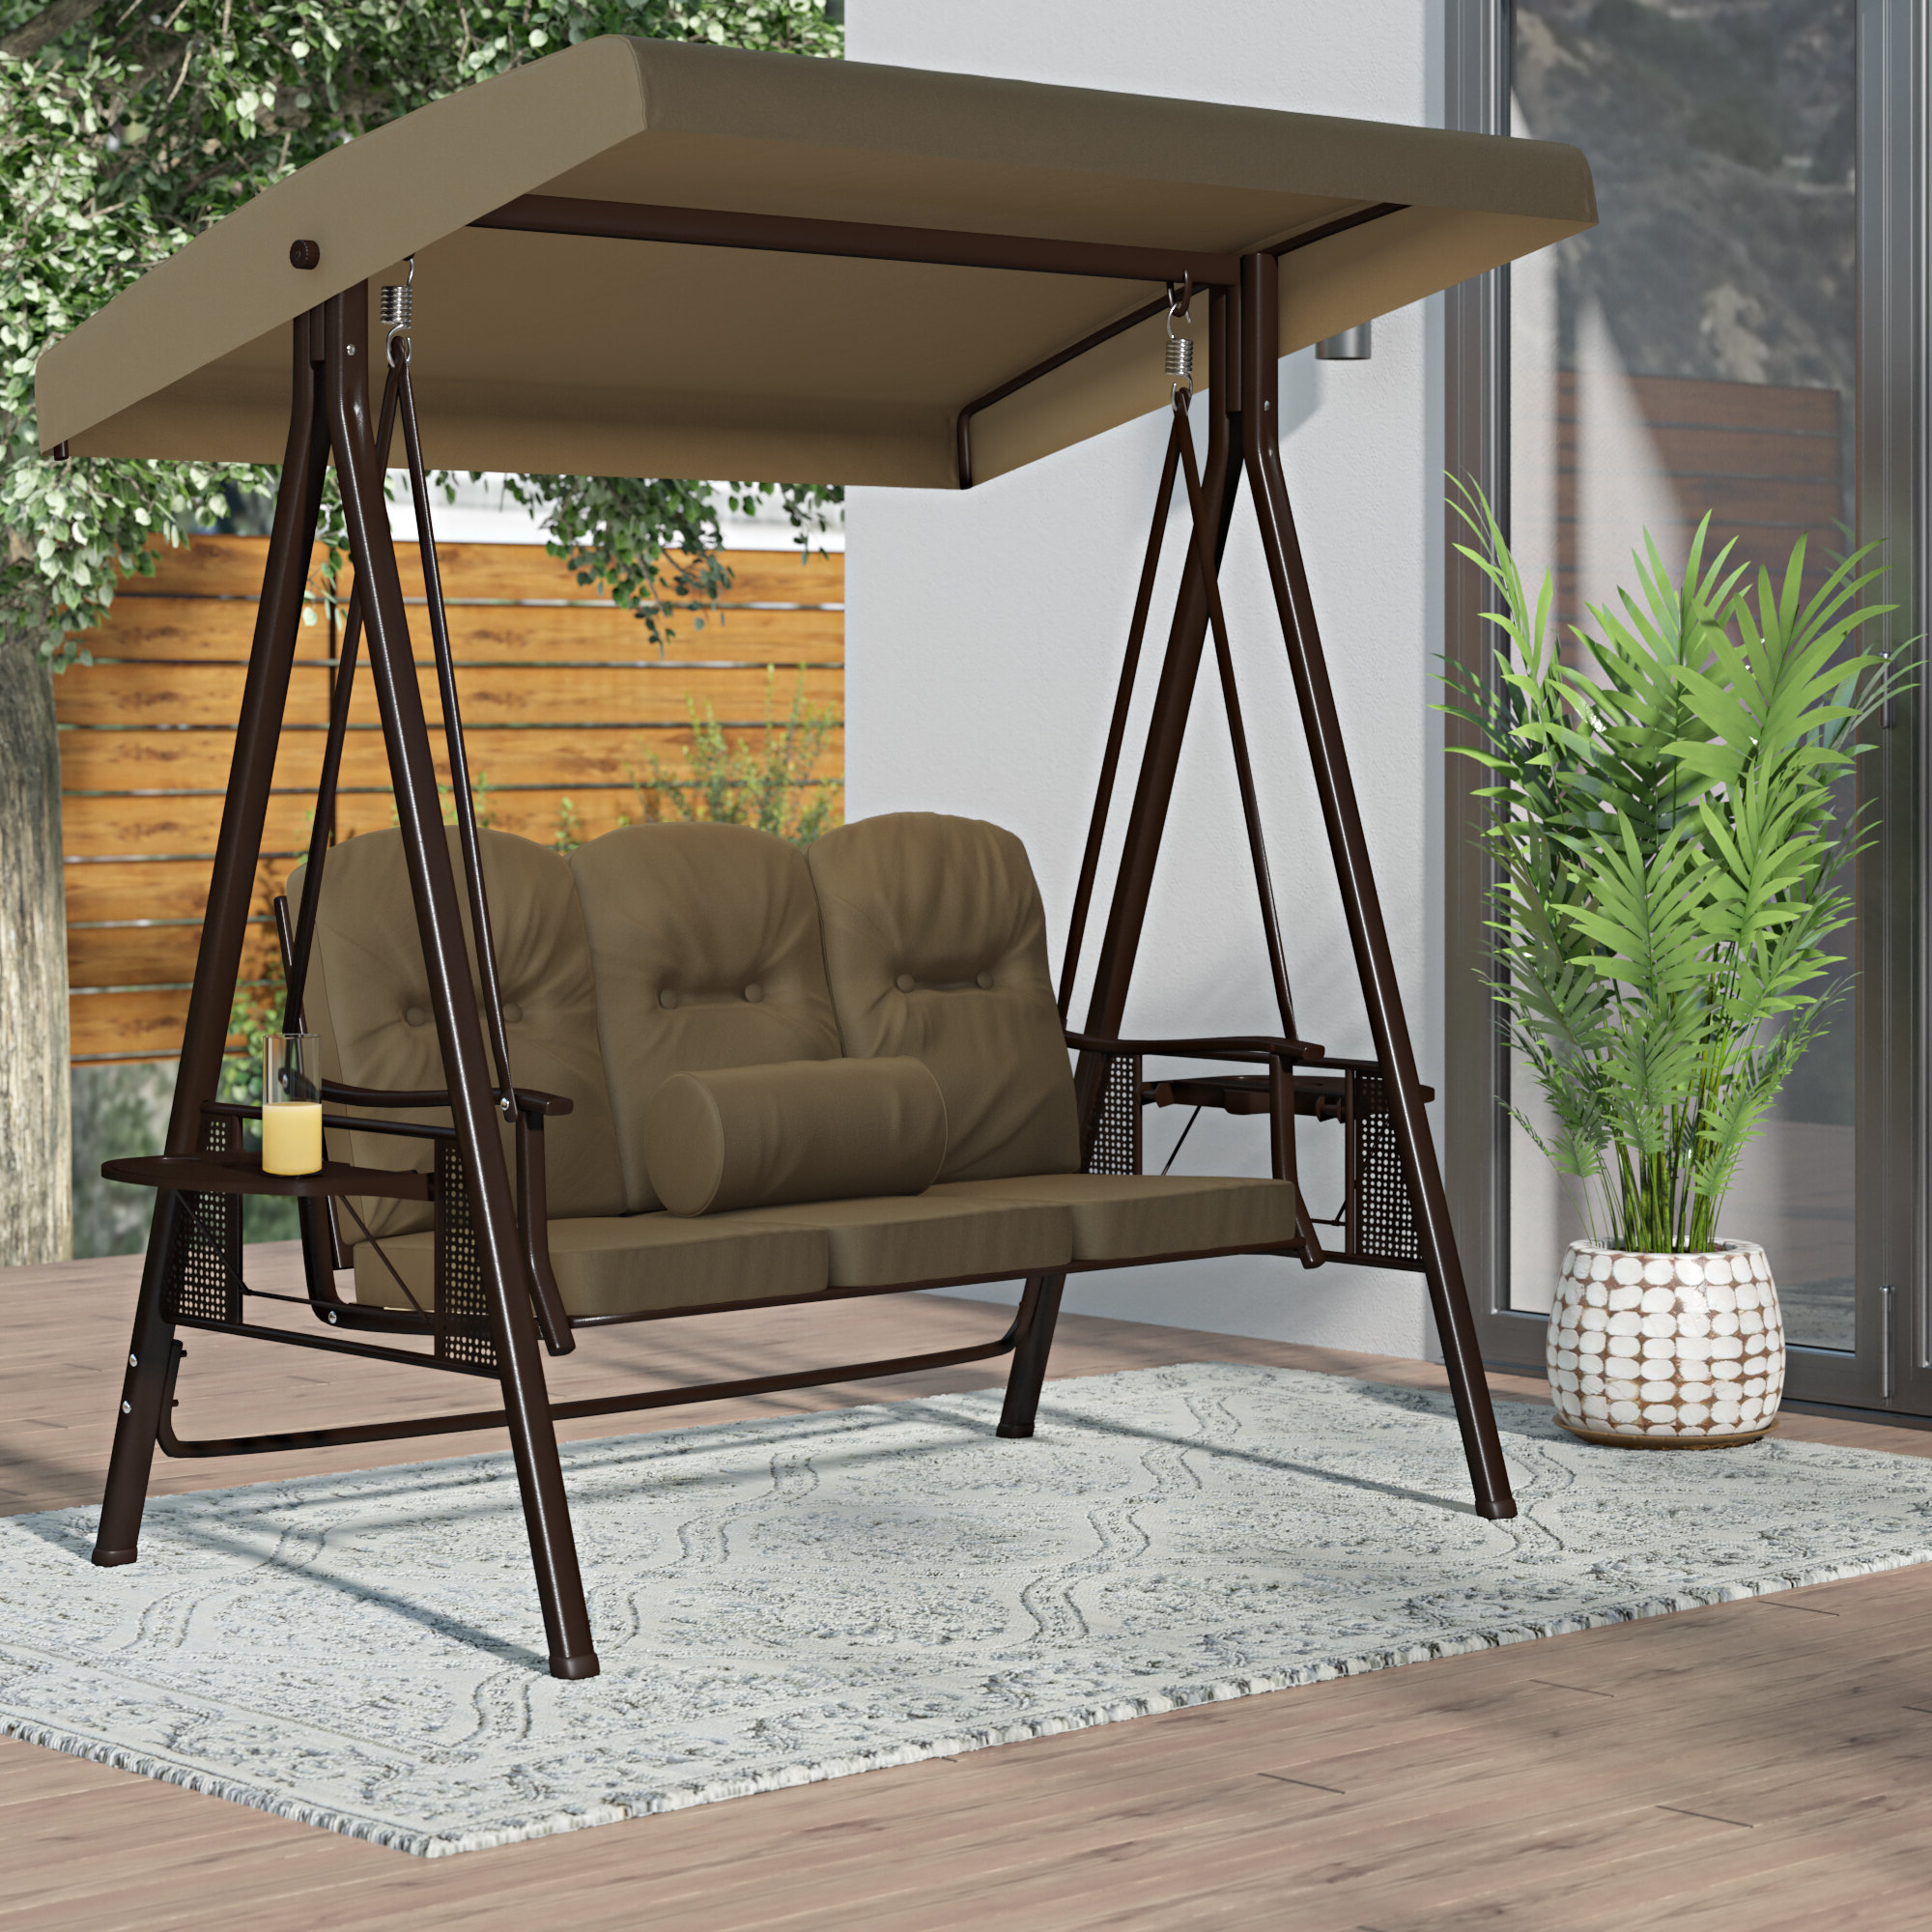 Well Liked Porch Swings For Folkston Outdoor Canopy Porch Swing With Stand (View 11 of 26)